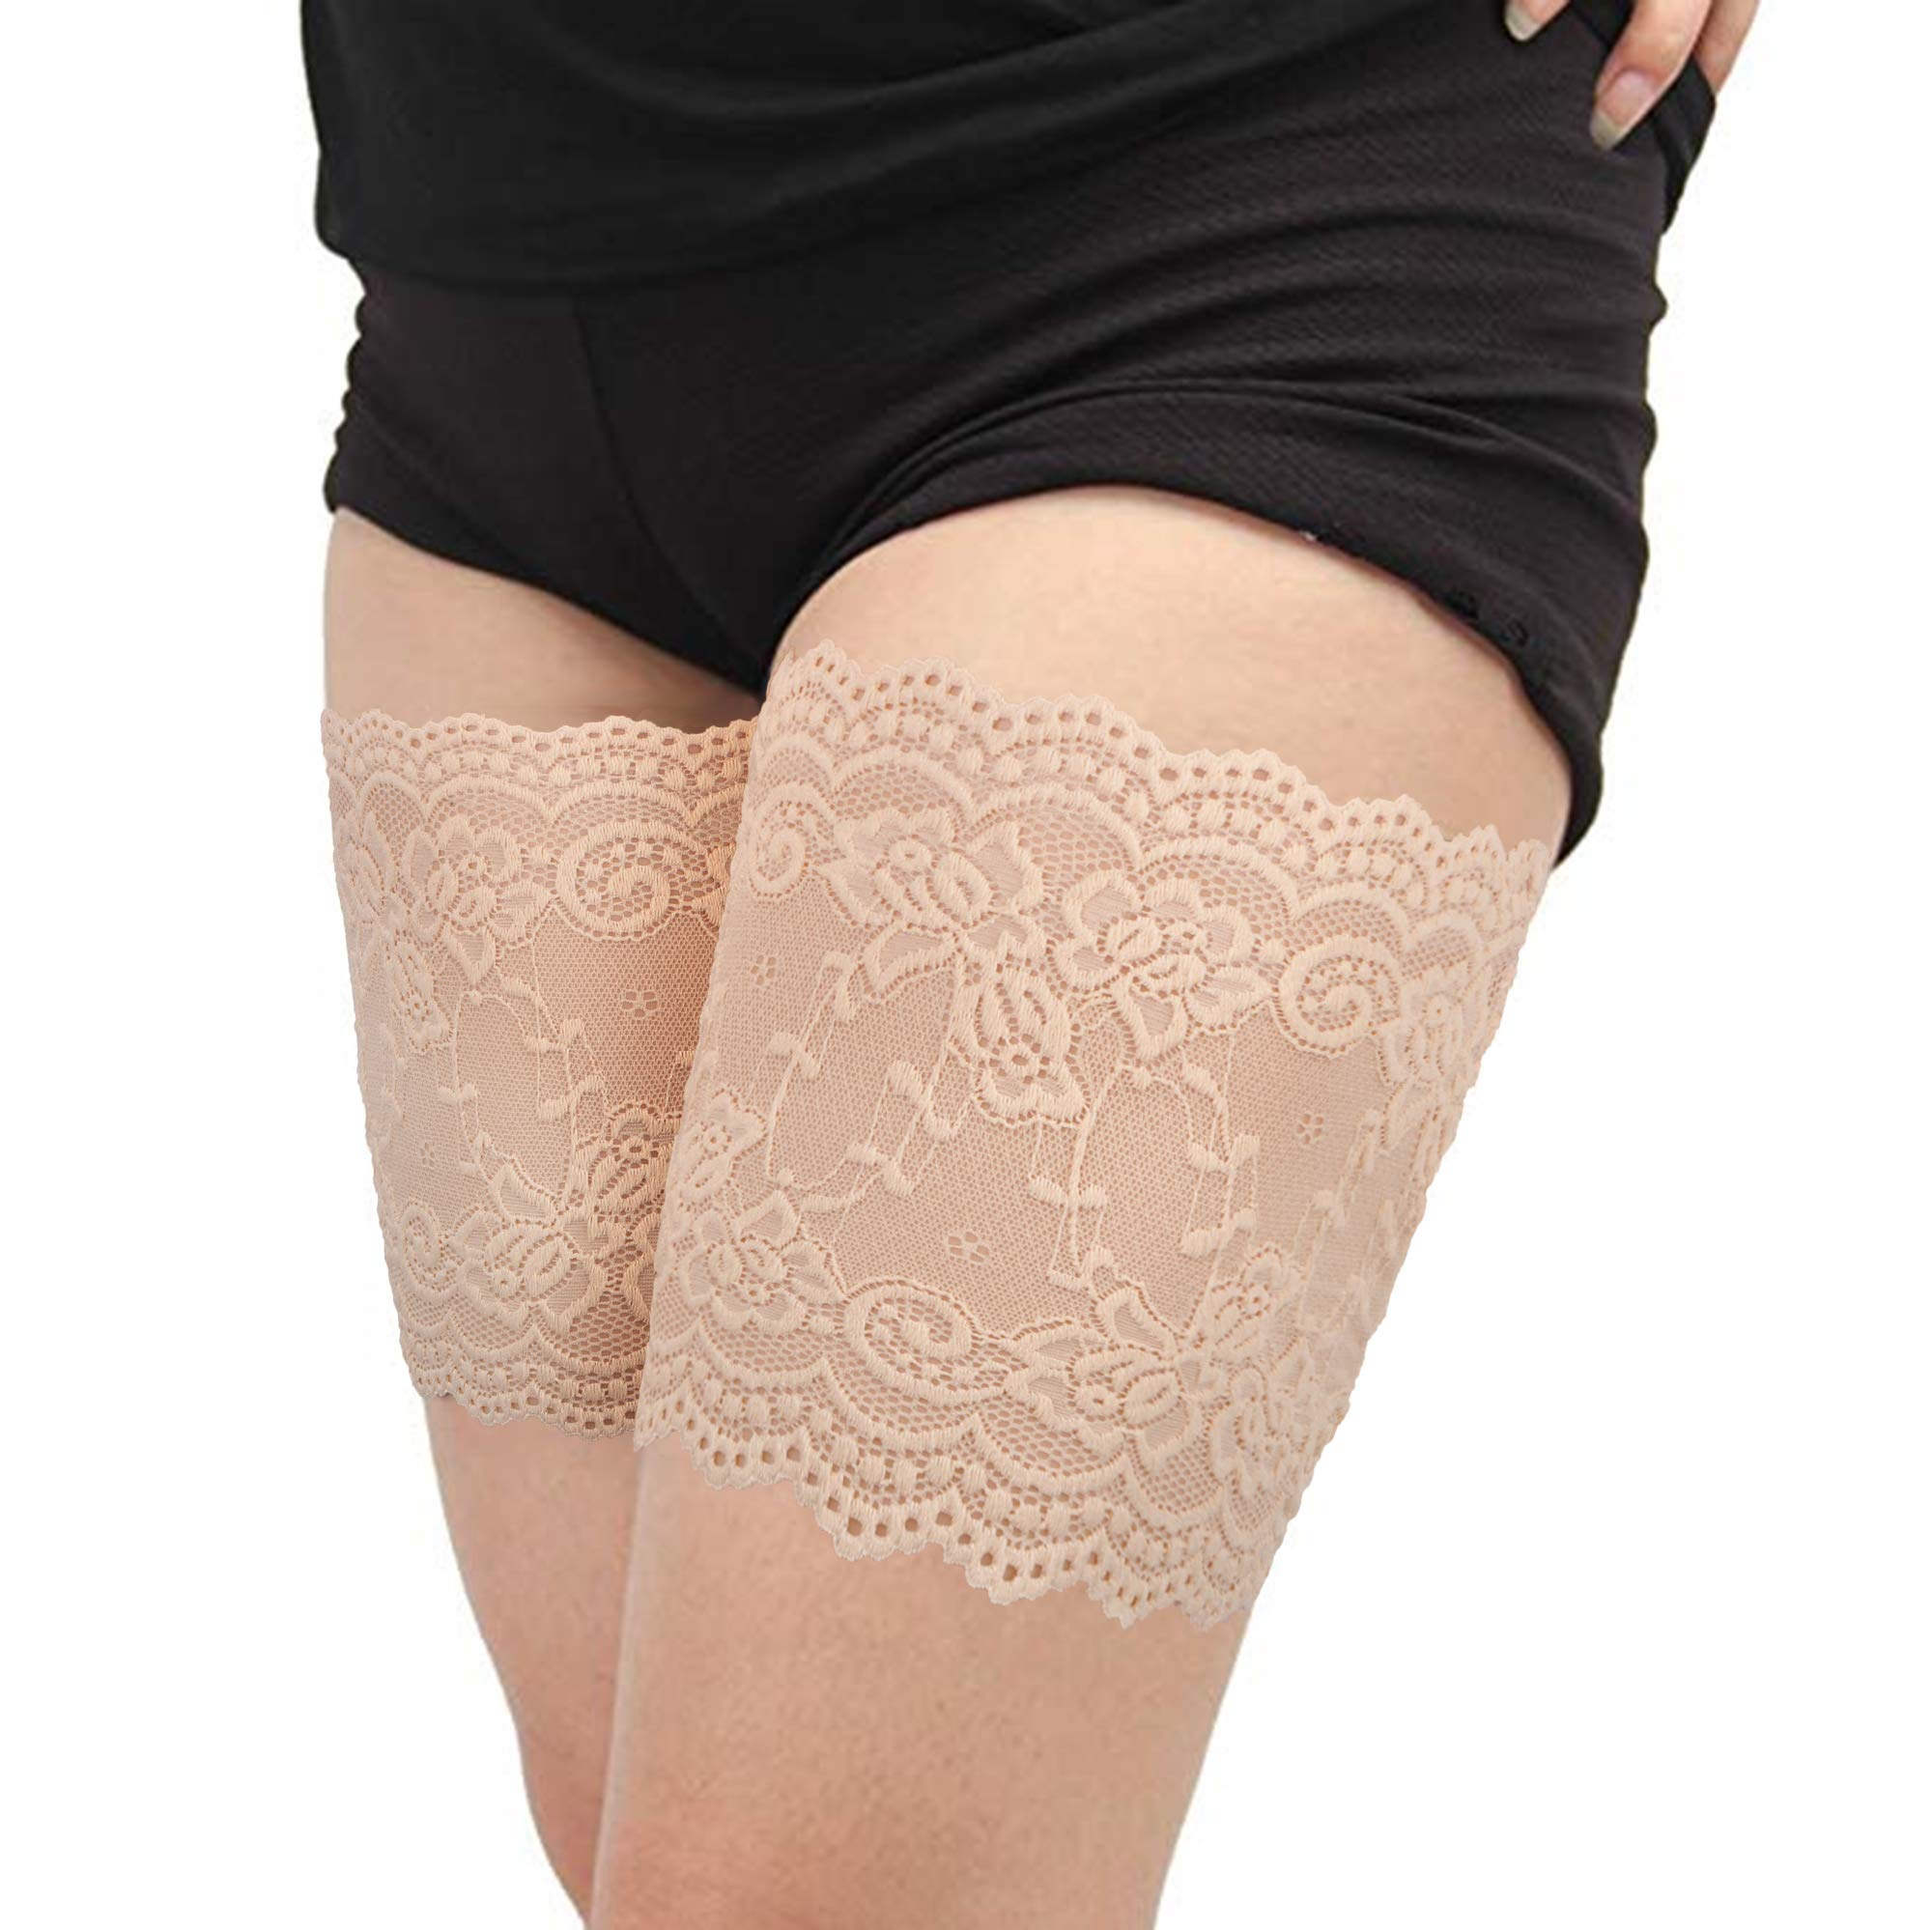 Women Lace Anti-Chafing Prevent Thigh Bands Elastic Sexy Socks 2 pairs C